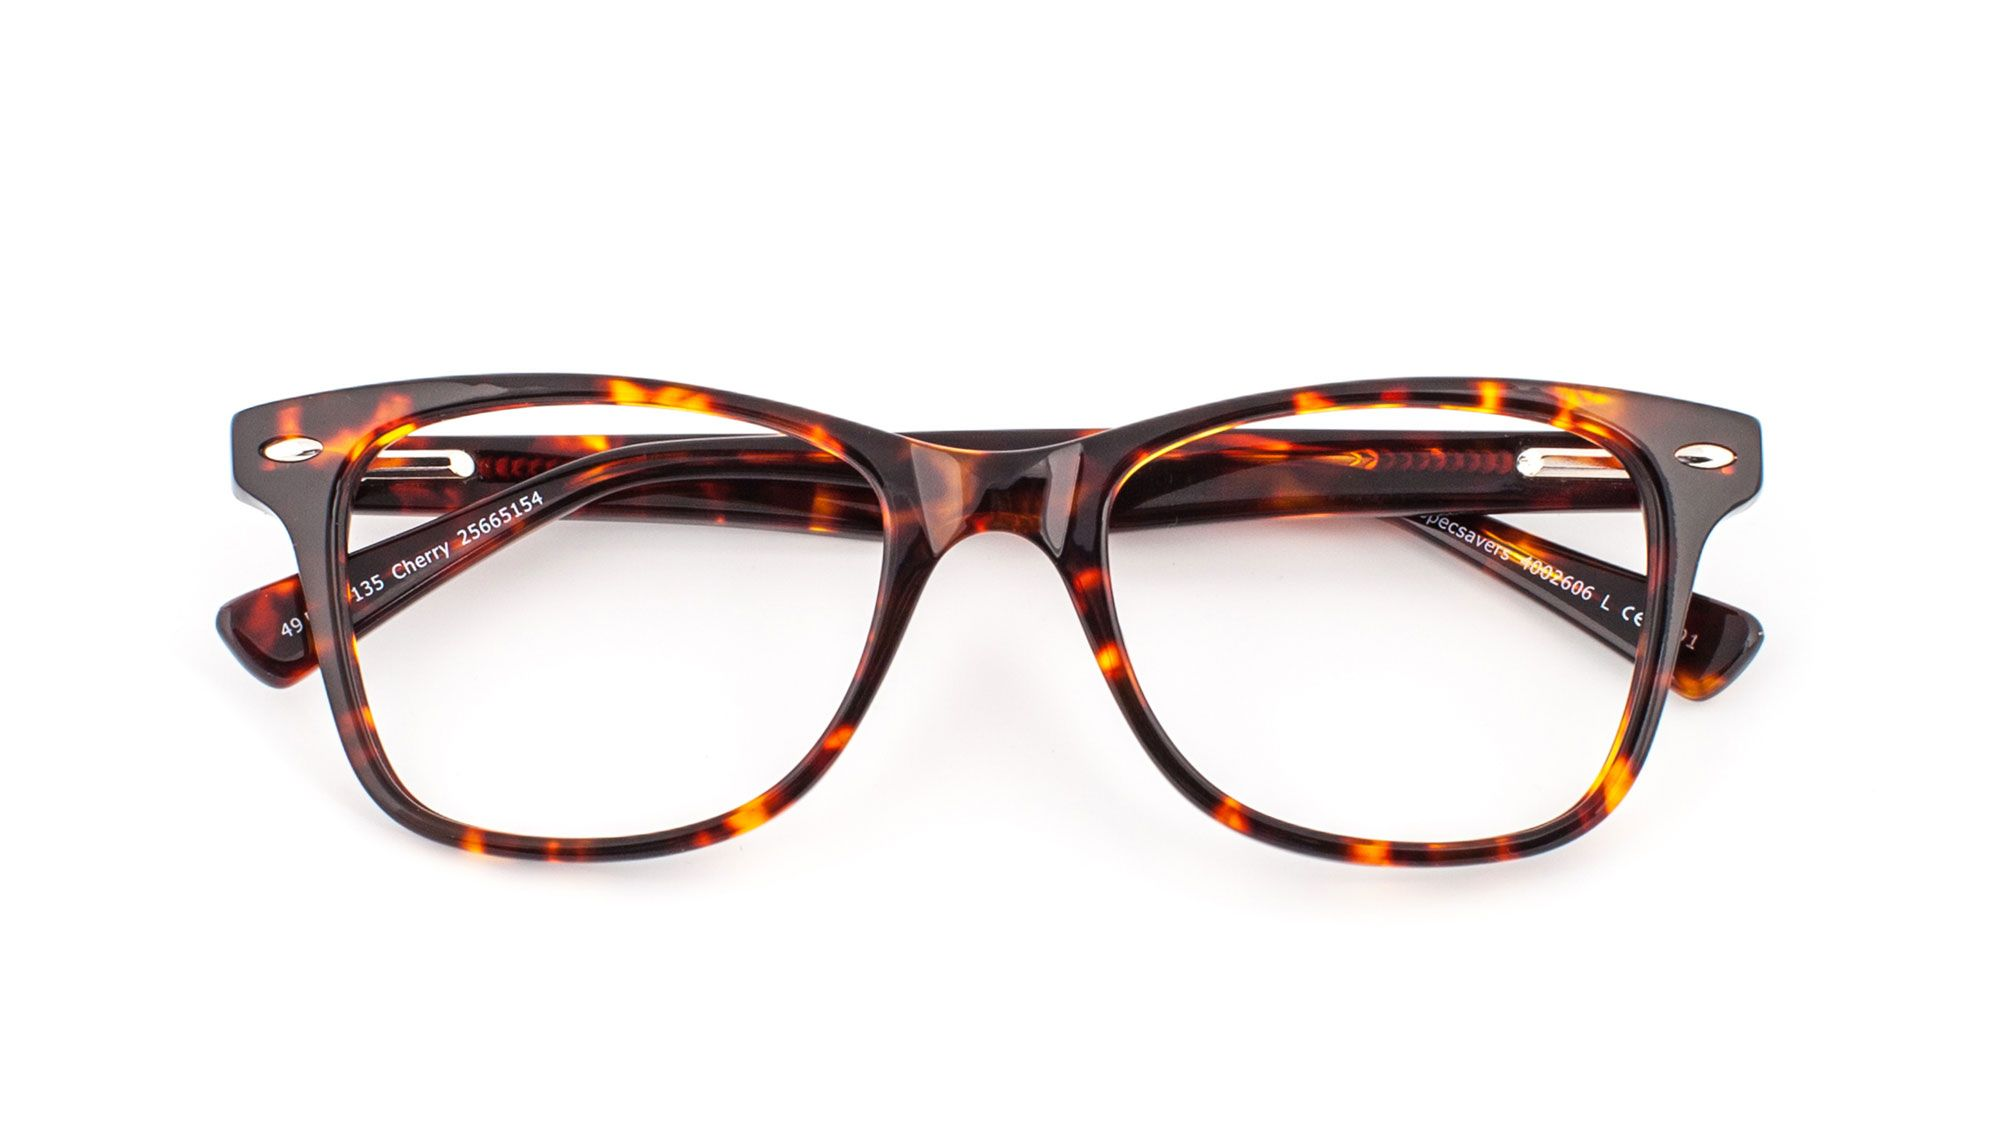 28f566e0259 Cherry Gl By Specsavers 85 Uk Things To Wear